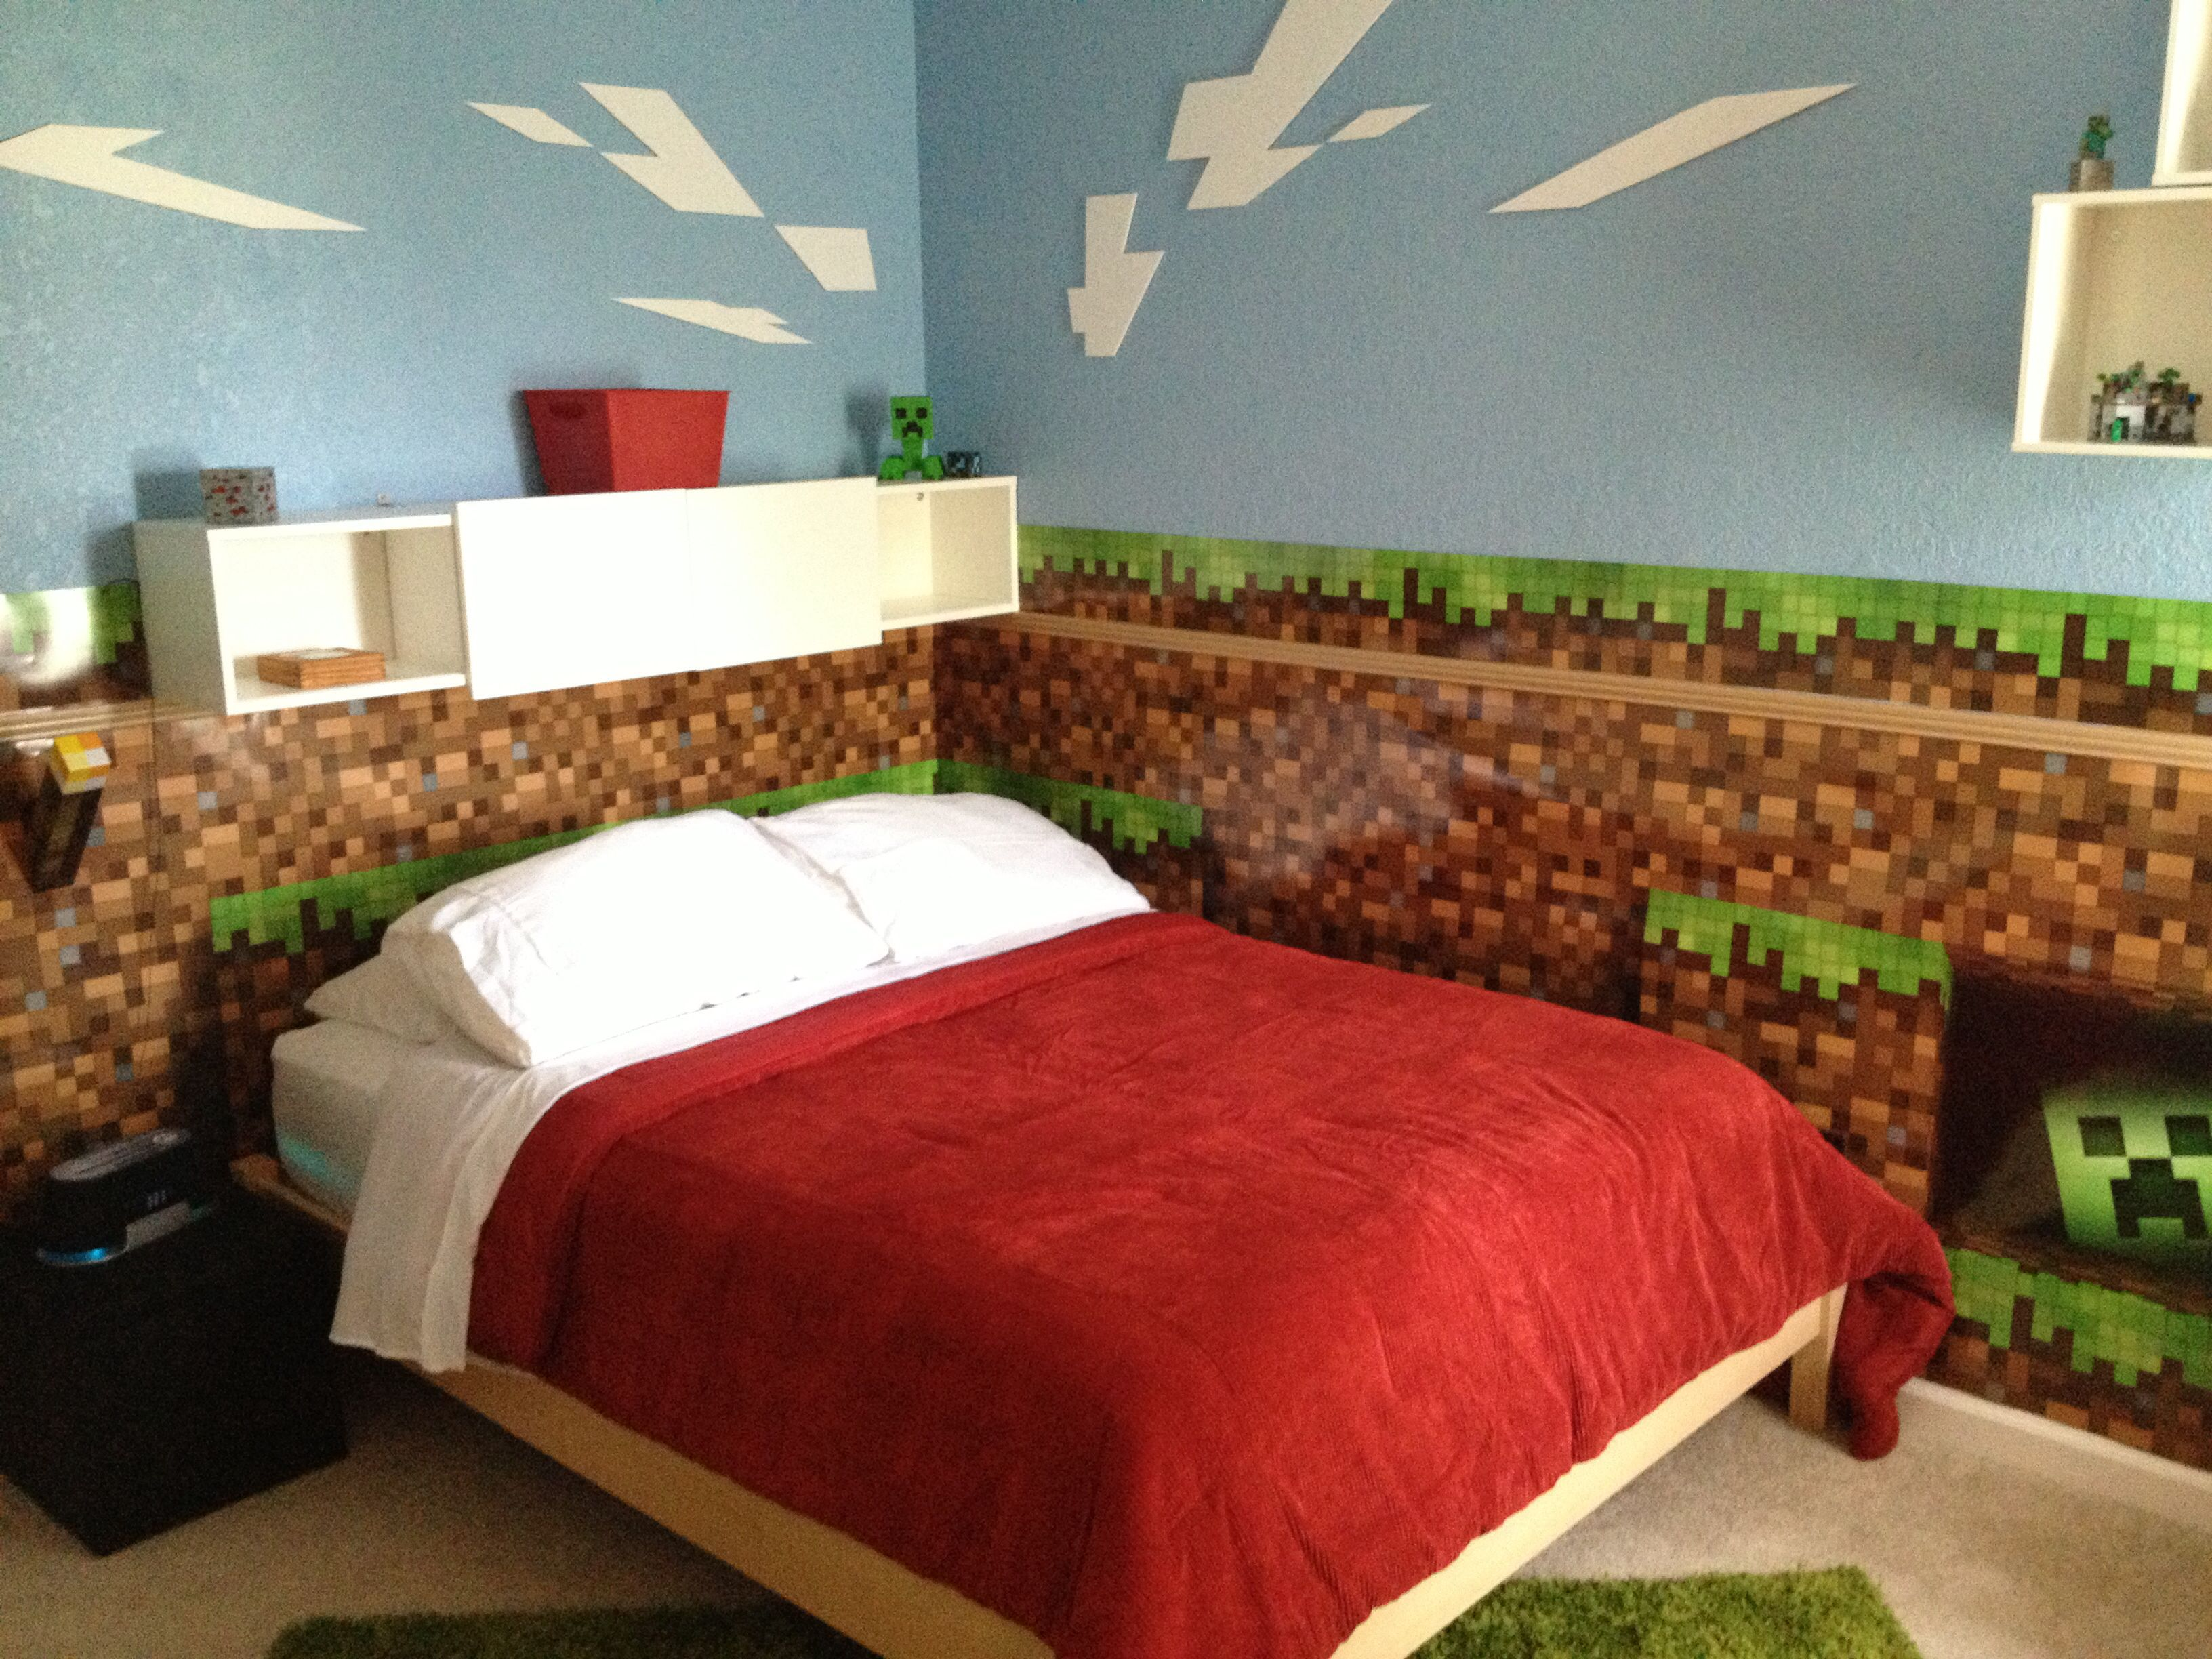 Amazing Minecraft Bedroom Decor Ideas Gyerekszoba Szoba Gyerekek